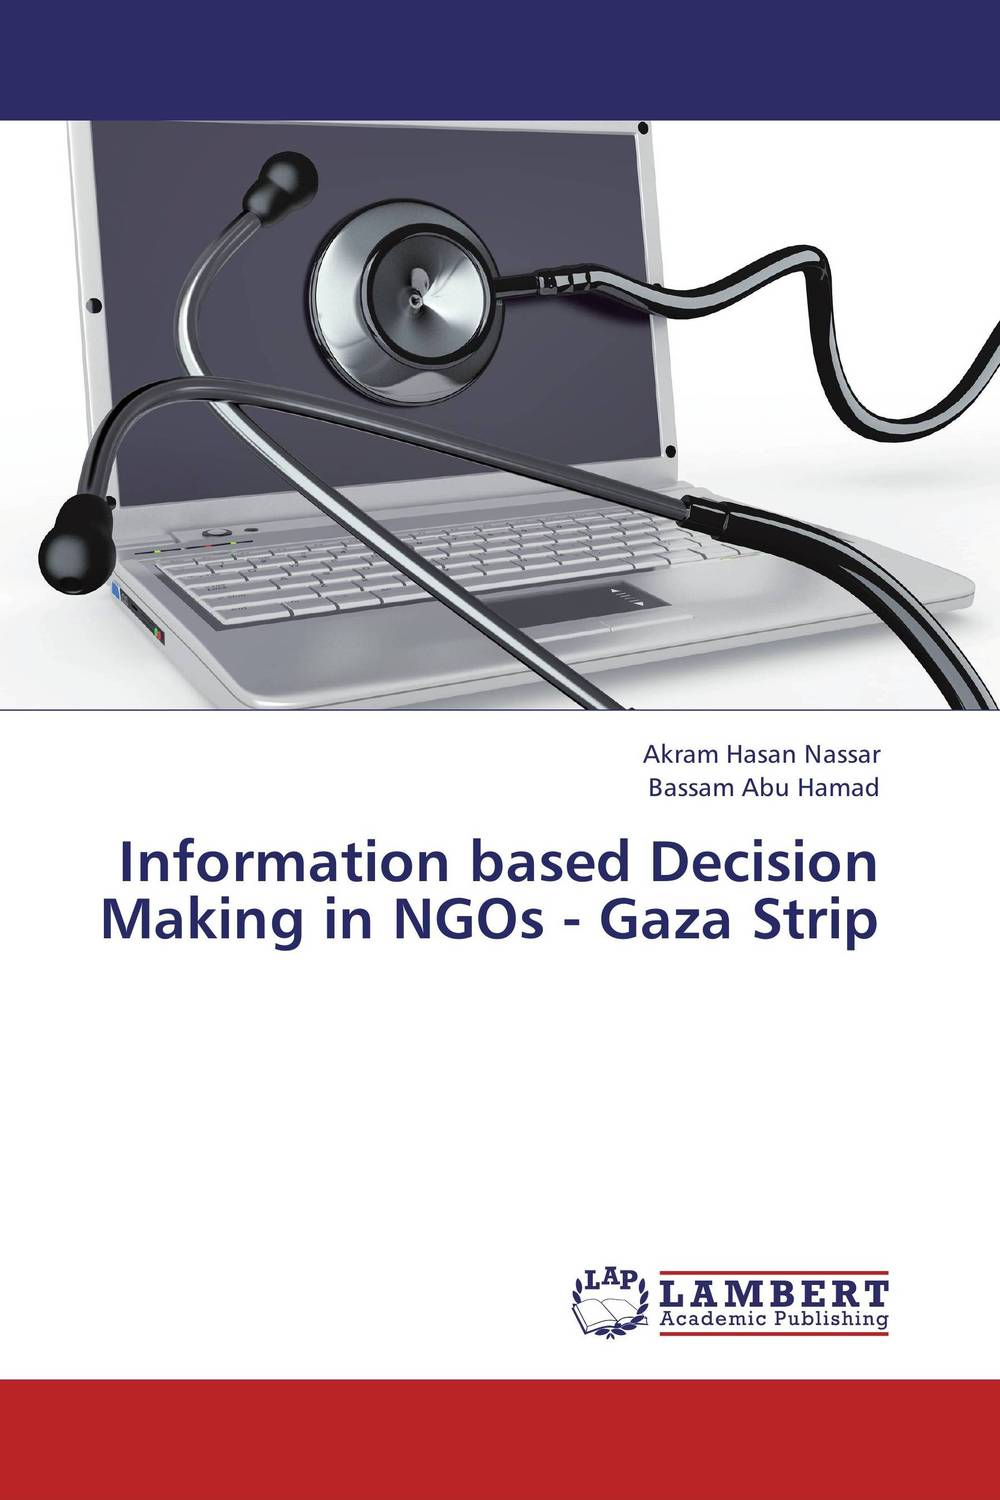 Information based Decision Making in NGOs - Gaza Strip